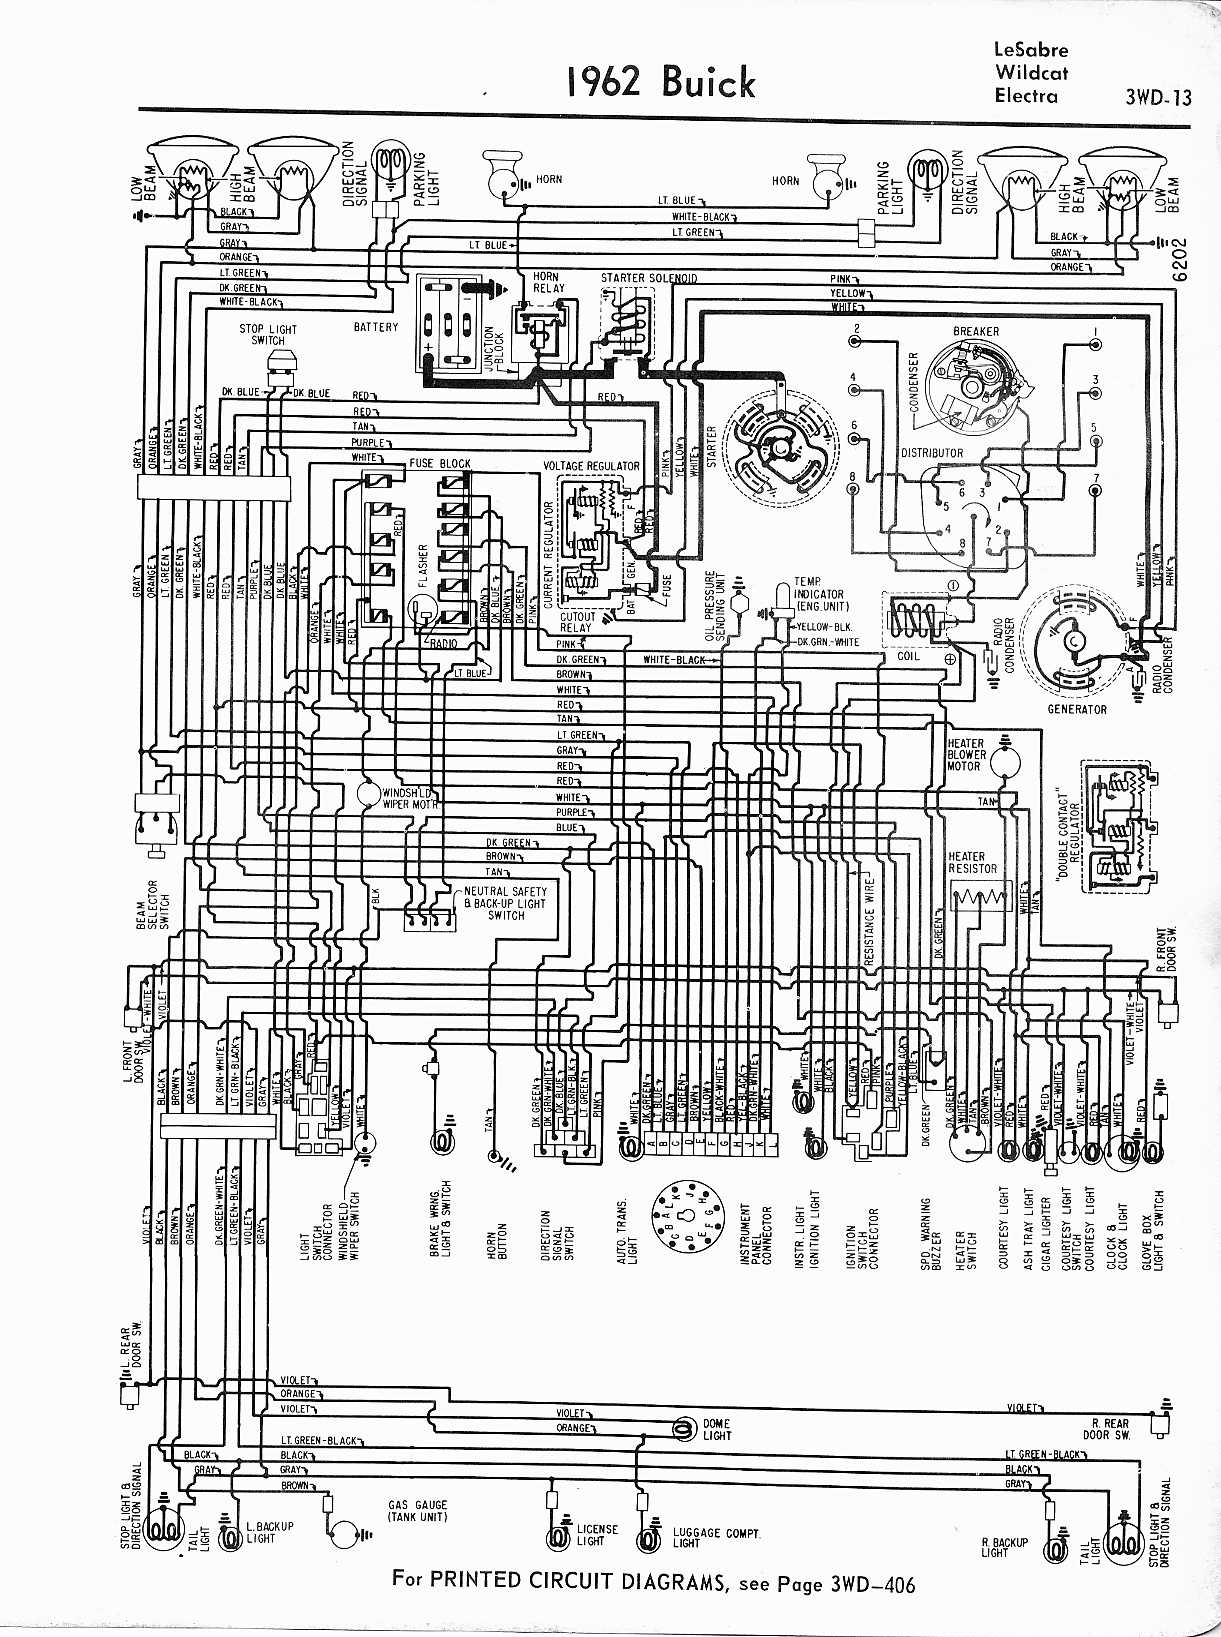 1959 buick lesabre wiring diagram wiring data u2022 rh maxi mail co